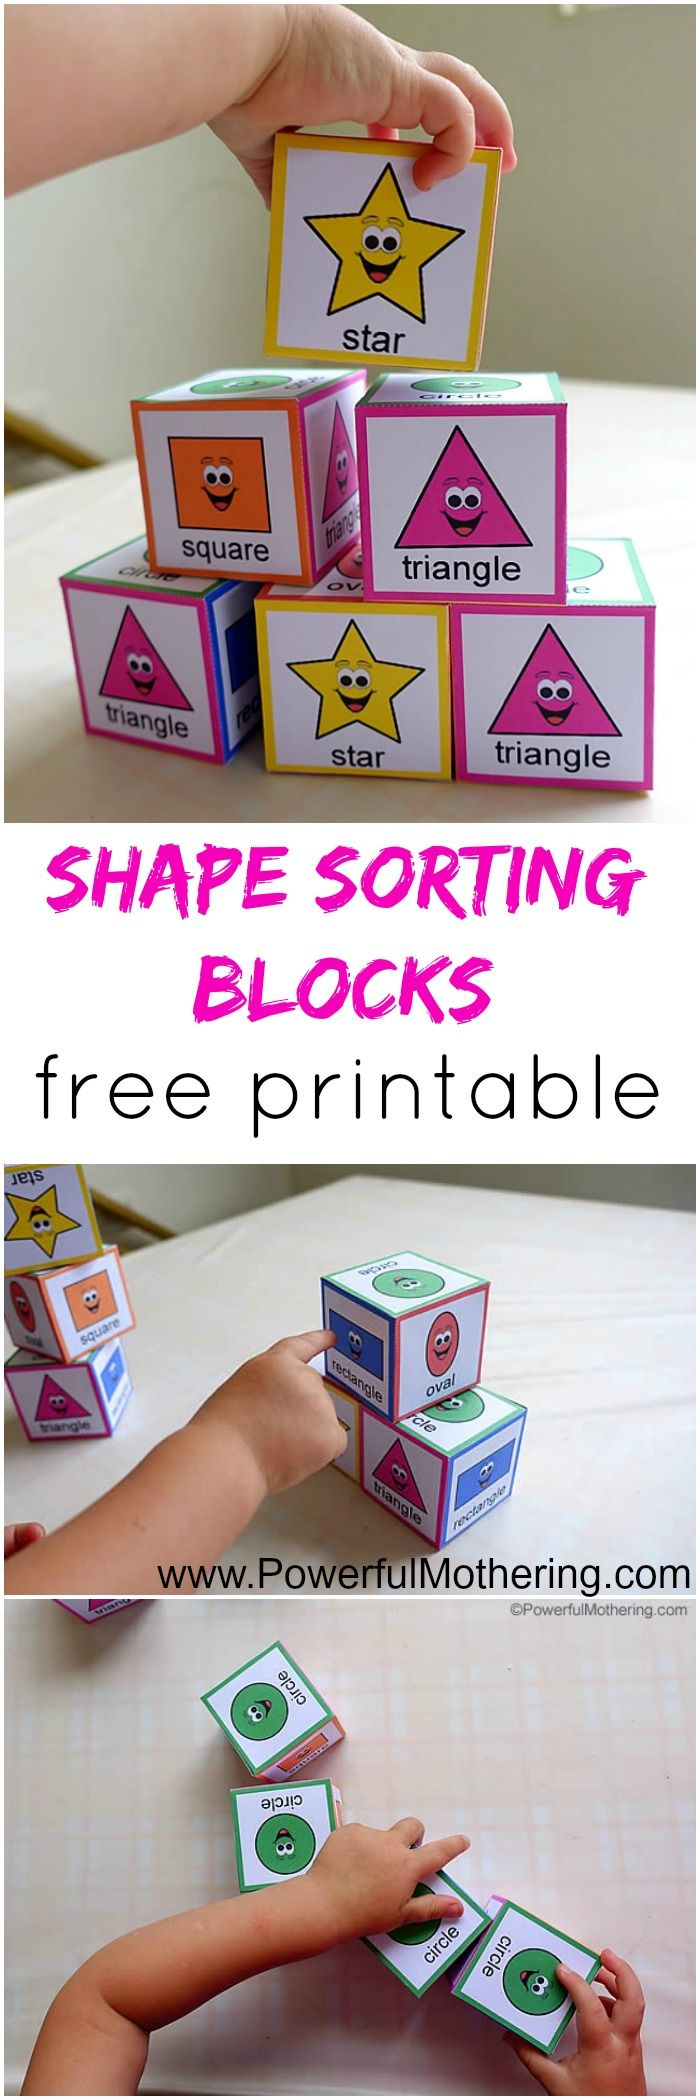 DIY Colorful Shape Sorting Blocks with Free Printable-triangle, rectangle, star, oval, circle, square